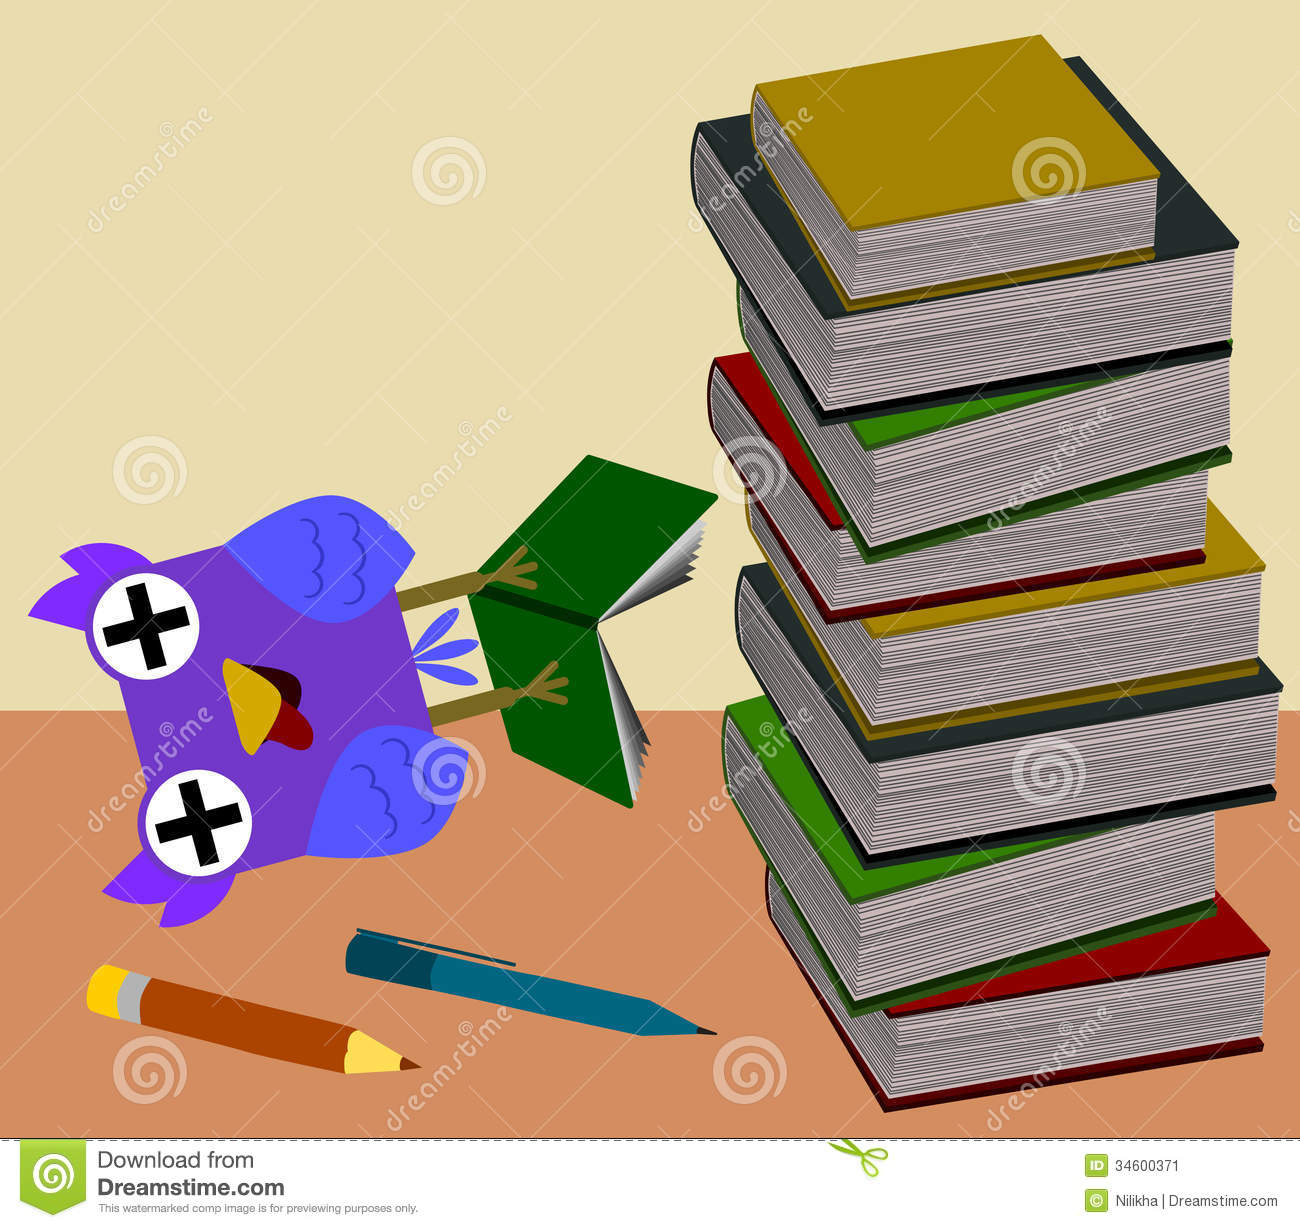 Over Studied Stock Image - Image: 34600371